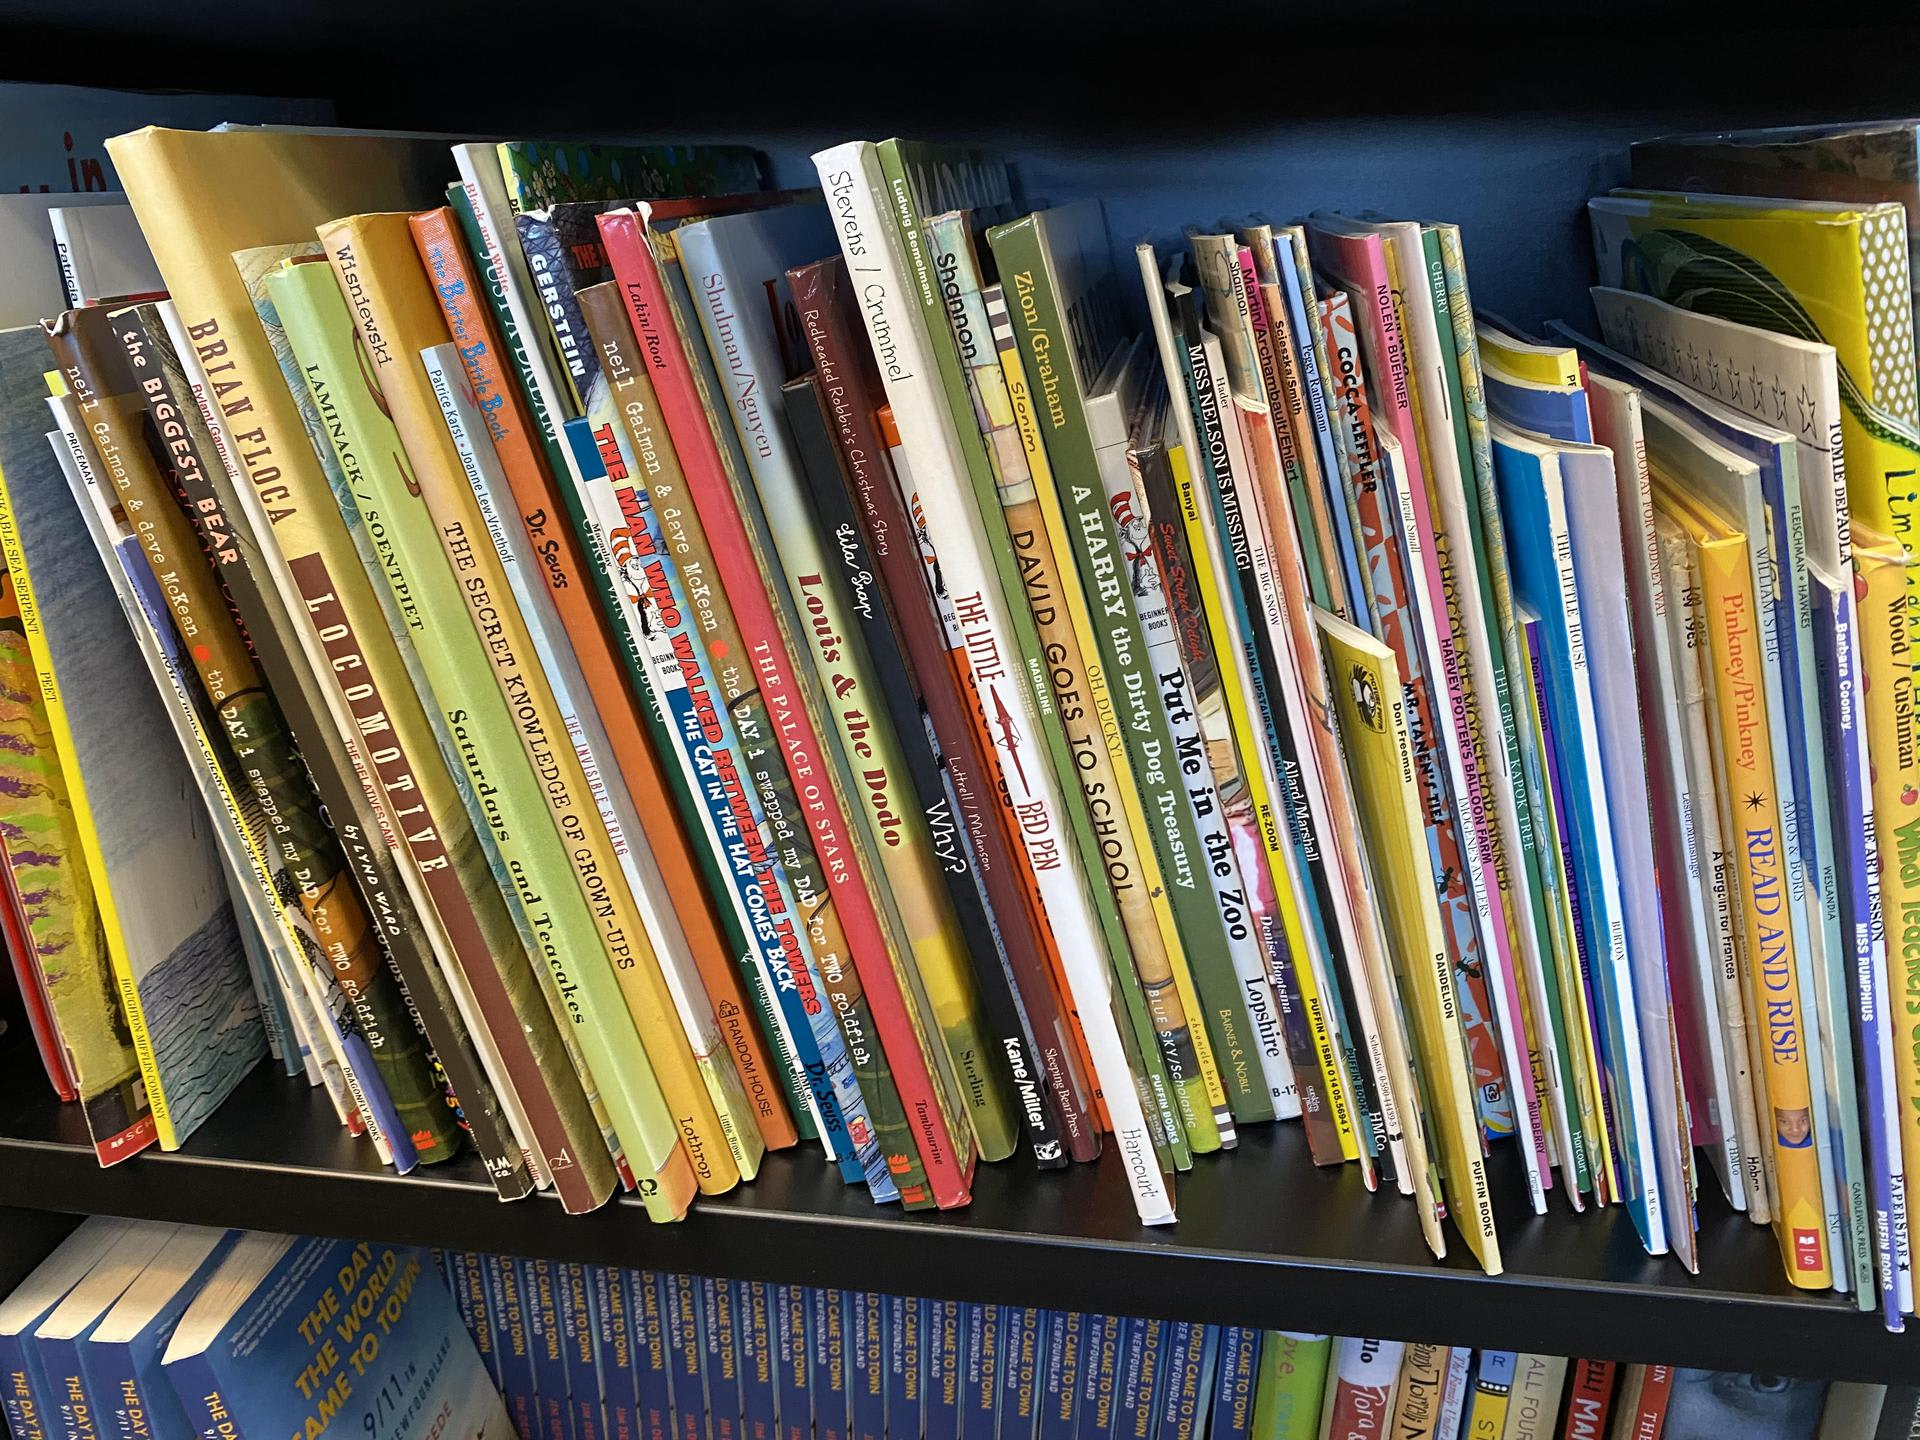 Picture of library books on a shelf.